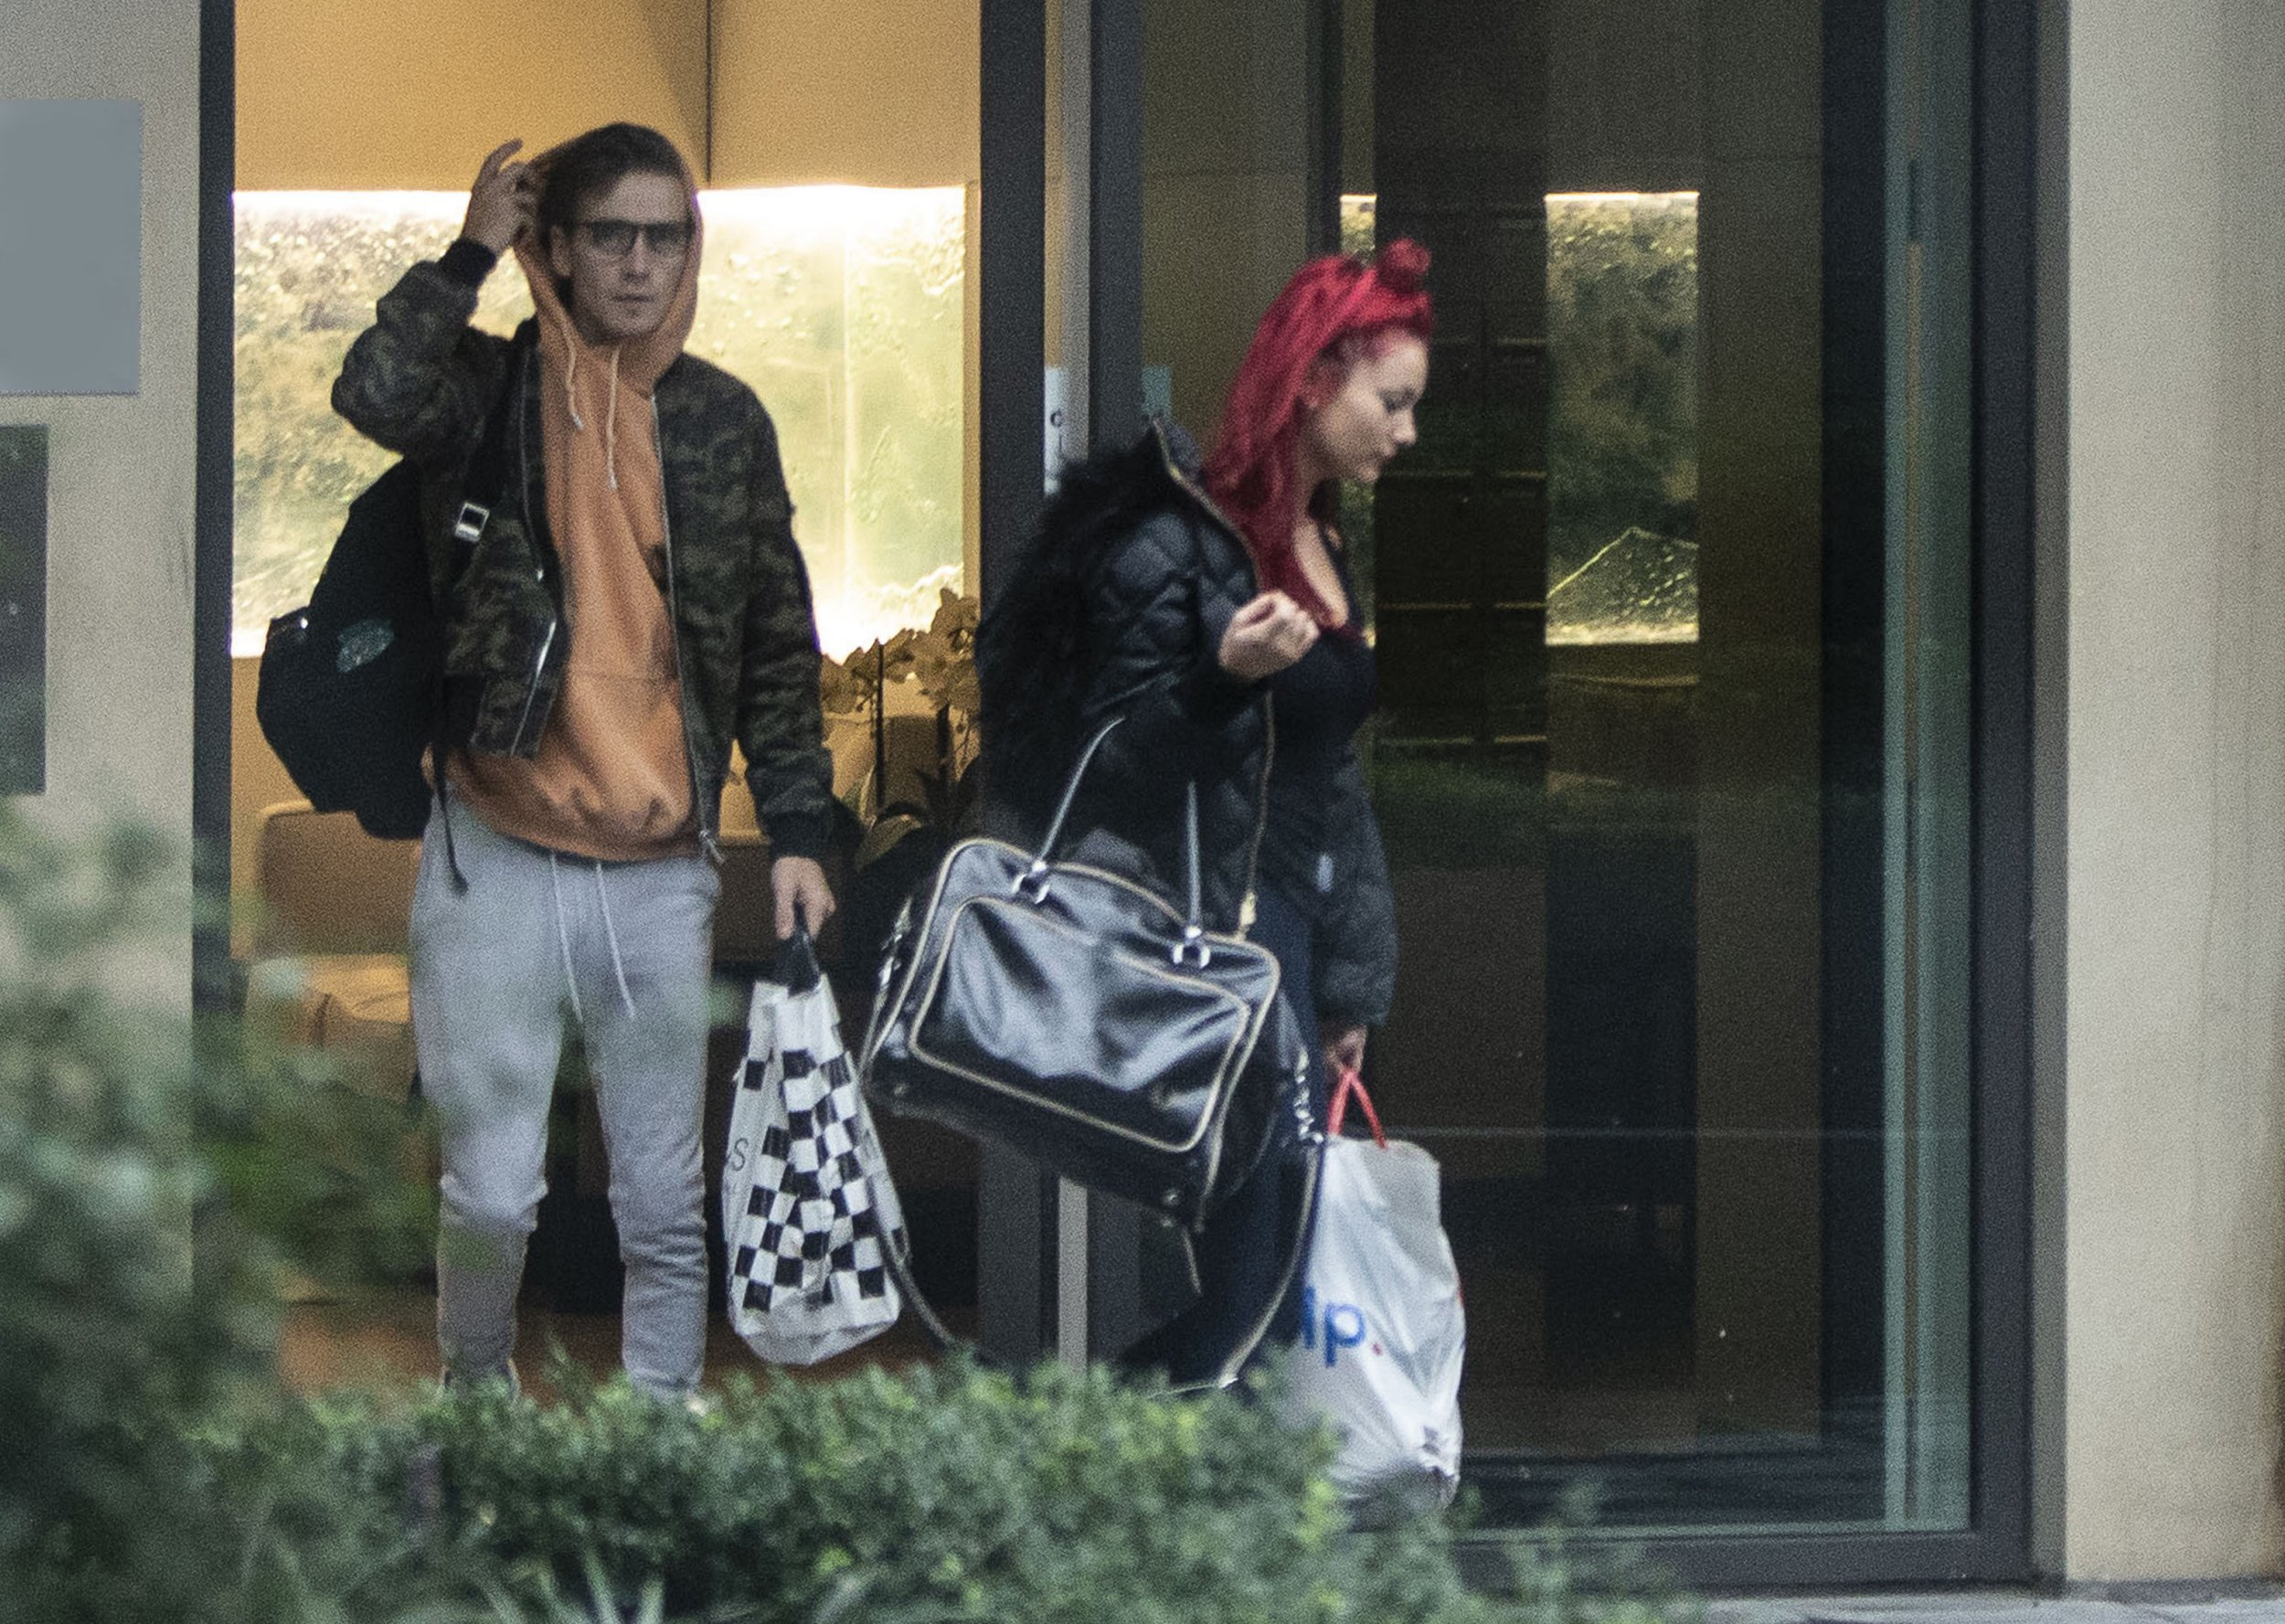 EXCLUSIVE: ONLINE EMBARGO 4pm, 8th Dec *?500 set fee ONLINE / ?500 set fee paper* Strictly Youtube sensation Joe Sugg pictured leaving his London apartment with his ?Strictly Come Dancing? Partner Dianne Buswell after the pair moved in together after getting close on the hit BBC TV Series. Joe was spotted with Dianne while the pair were out visiting a Santander on Tuesday (04-12-2018), then on Wednesday morning leaving Joe's apartment together after spending the night there. They were later seen that evening as they headed back to their apartment before being snapped leaving Joe's apartment together on Thursday morning. Pictured: Joe Sugg,Dianne Buswell Ref: SPL5047535 061218 EXCLUSIVE Picture by: SplashNews.com ONLINE EMBARGO 4pm, 8th Dec *?500 set fee ONLINE / ?500 set fee paper* Splash News and Pictures Los Angeles: 310-821-2666 New York: 212-619-2666 London: 0207 644 7656 Milan: 02 4399 8577 photodesk@splashnews.com World Rights